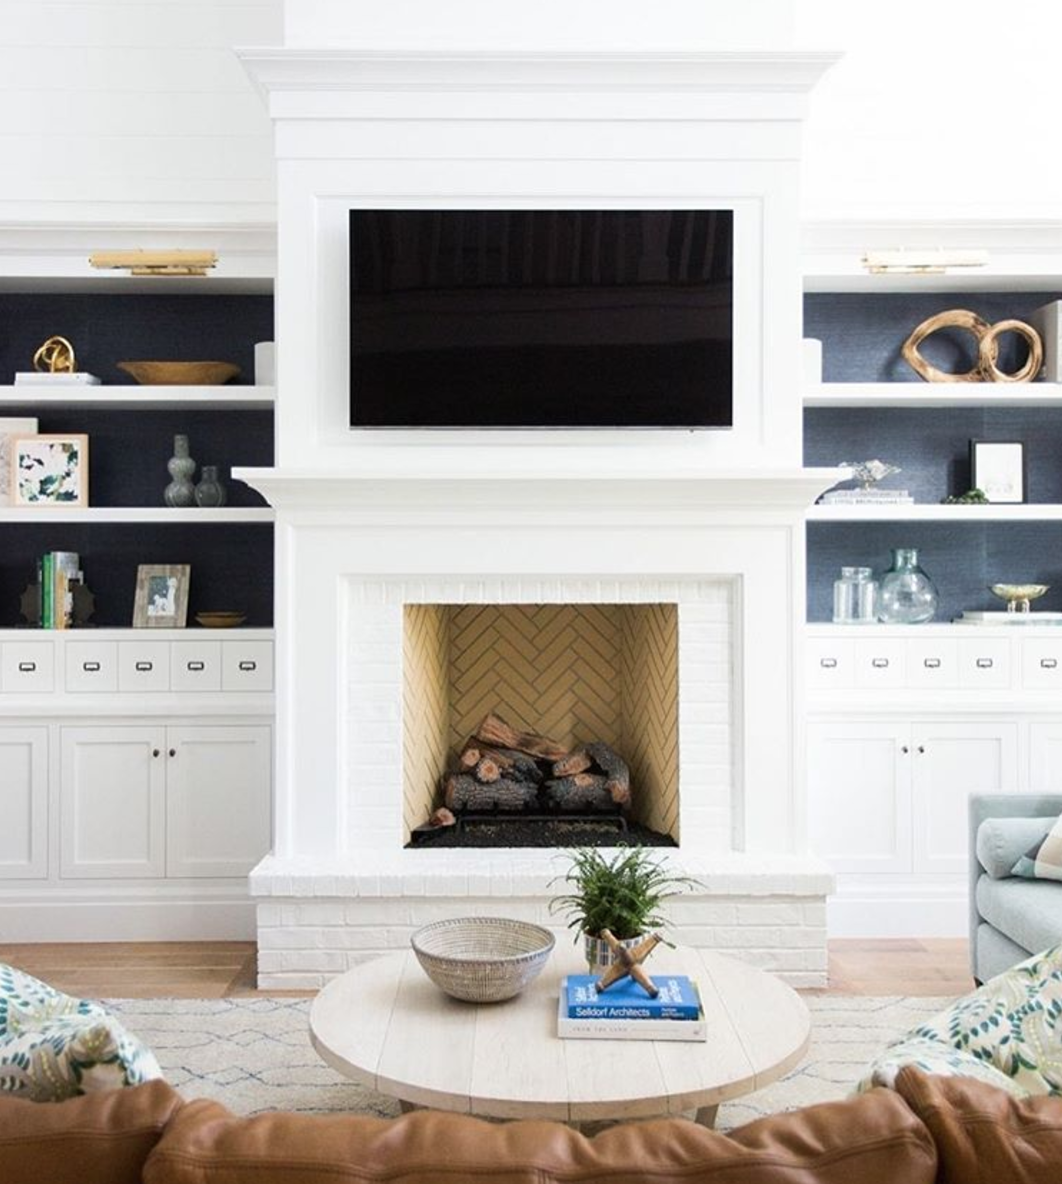 Home Interiorwall Design Ideas: Herringbone In The Fireplace, Shelves. I Like The Simple